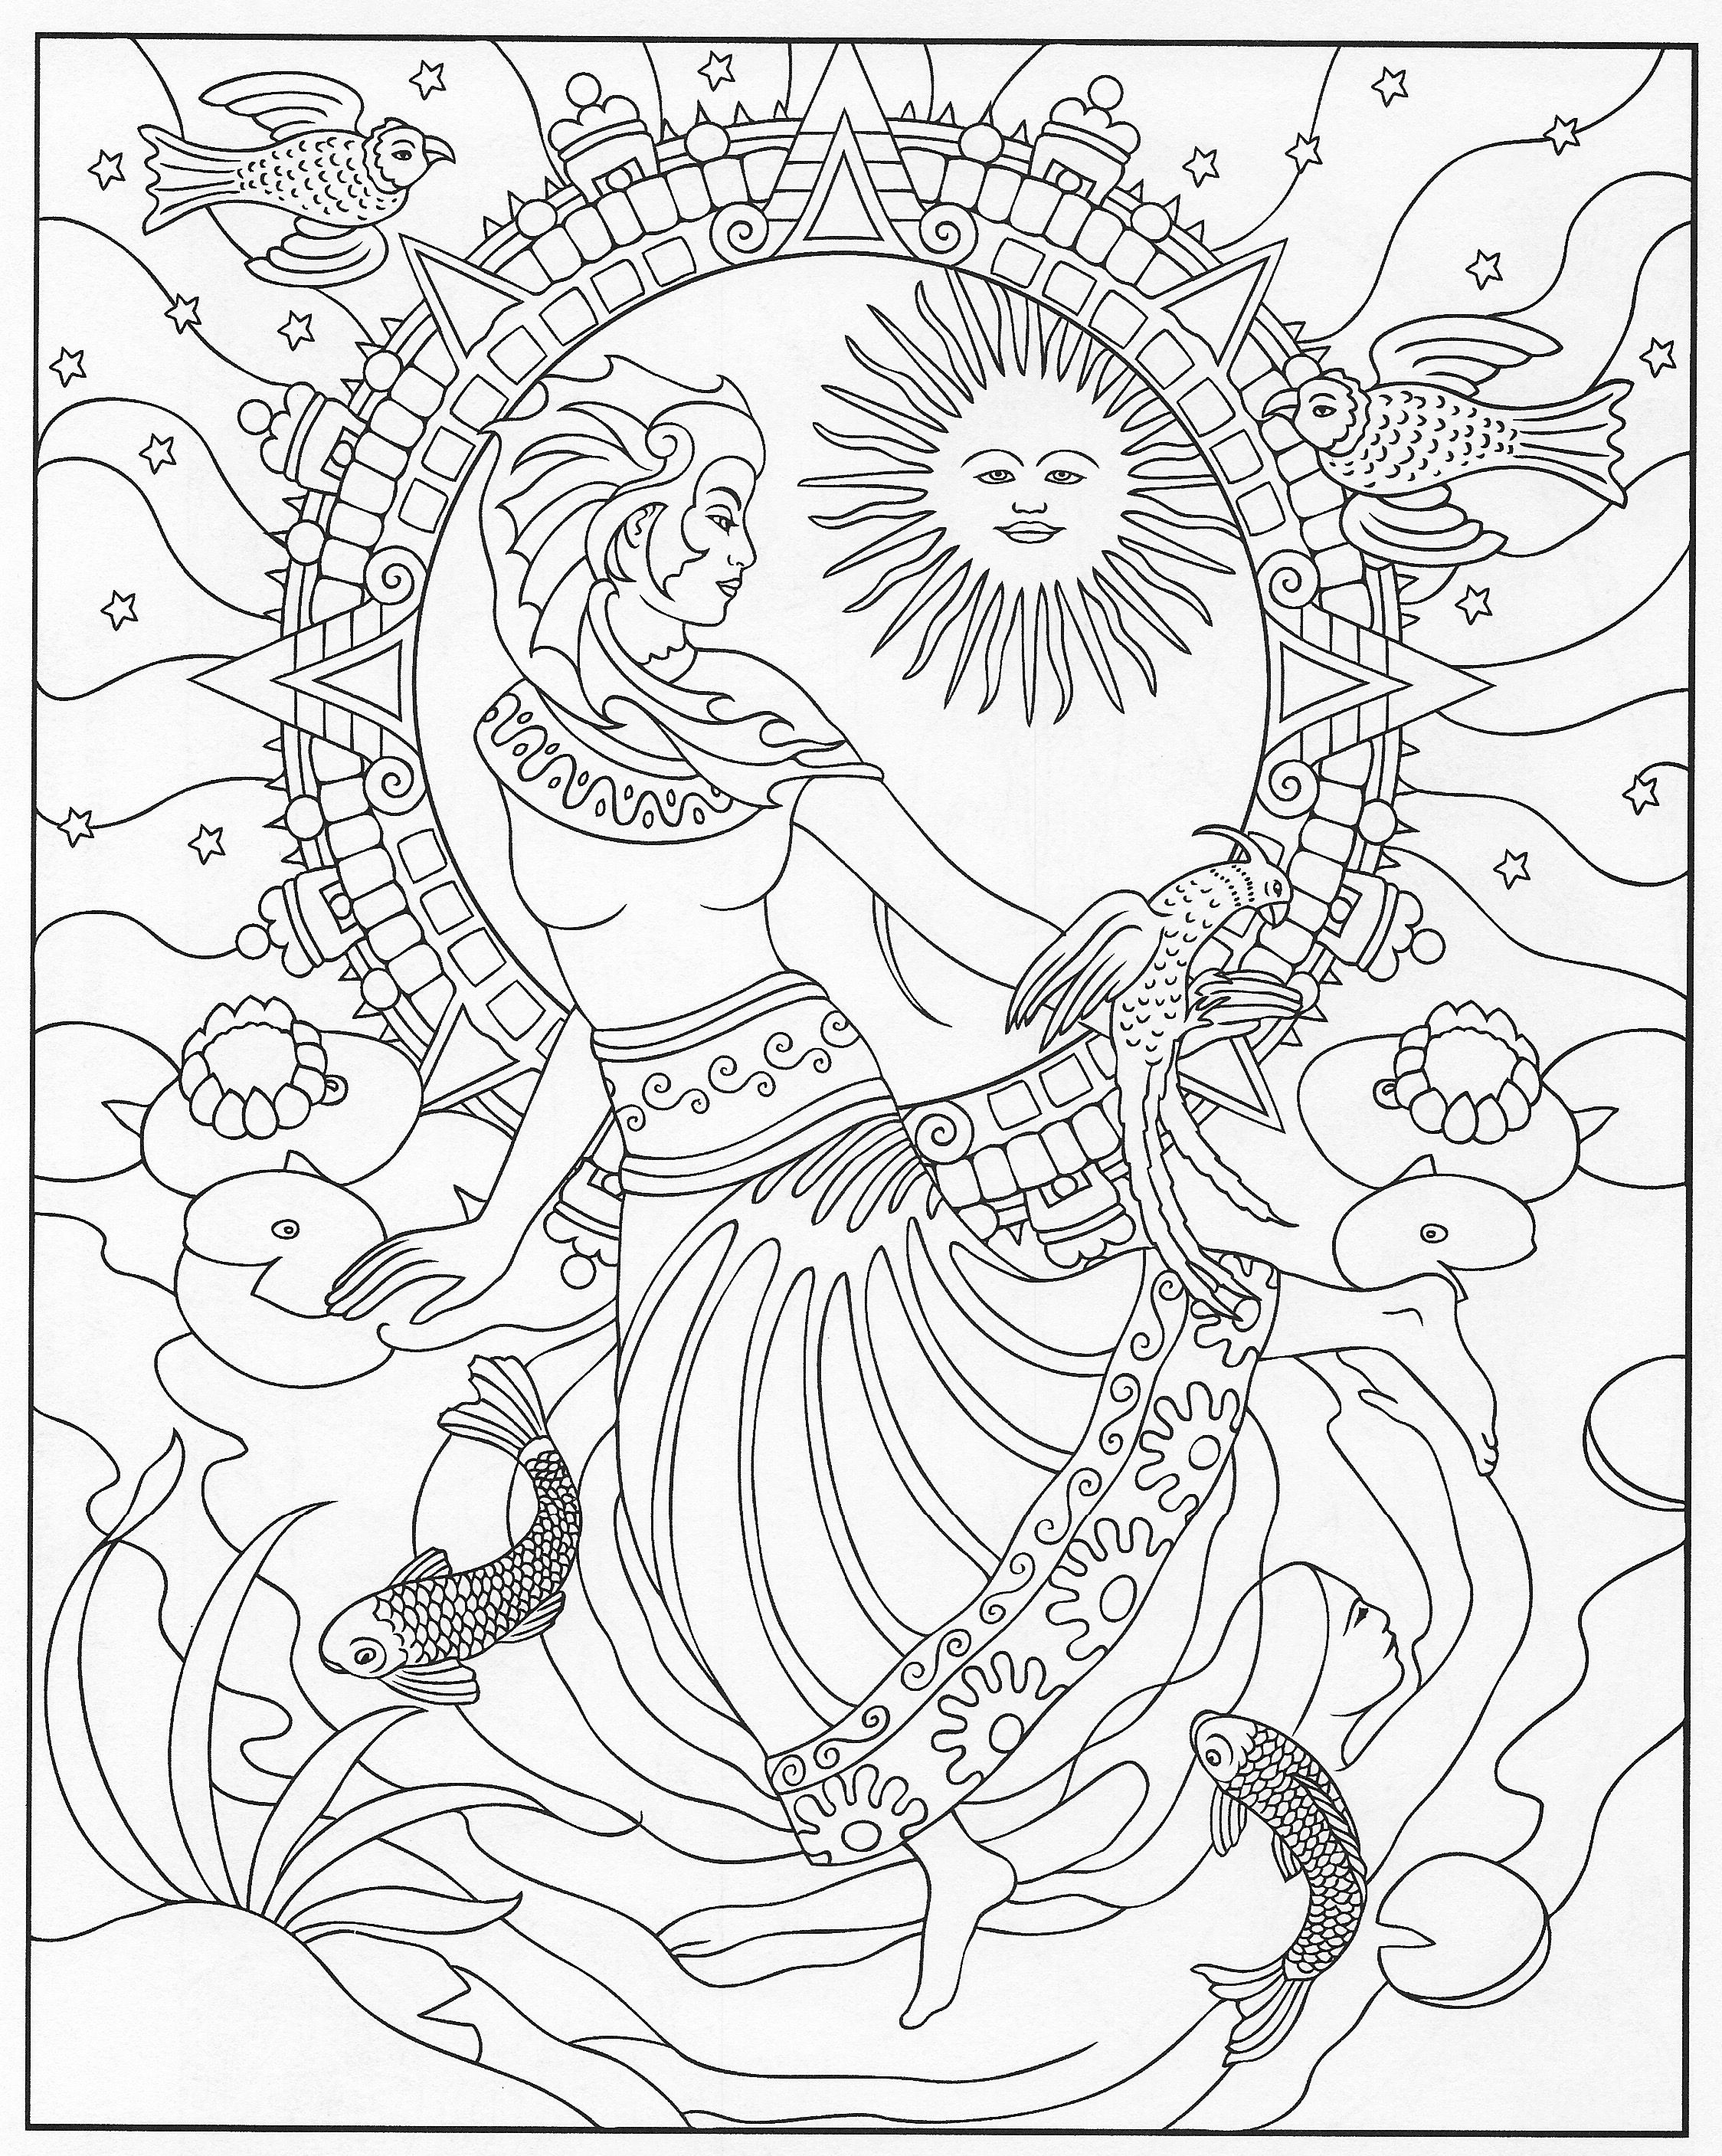 - Pin By Val Wilson On Coloring Pages Coloring Books, Dover